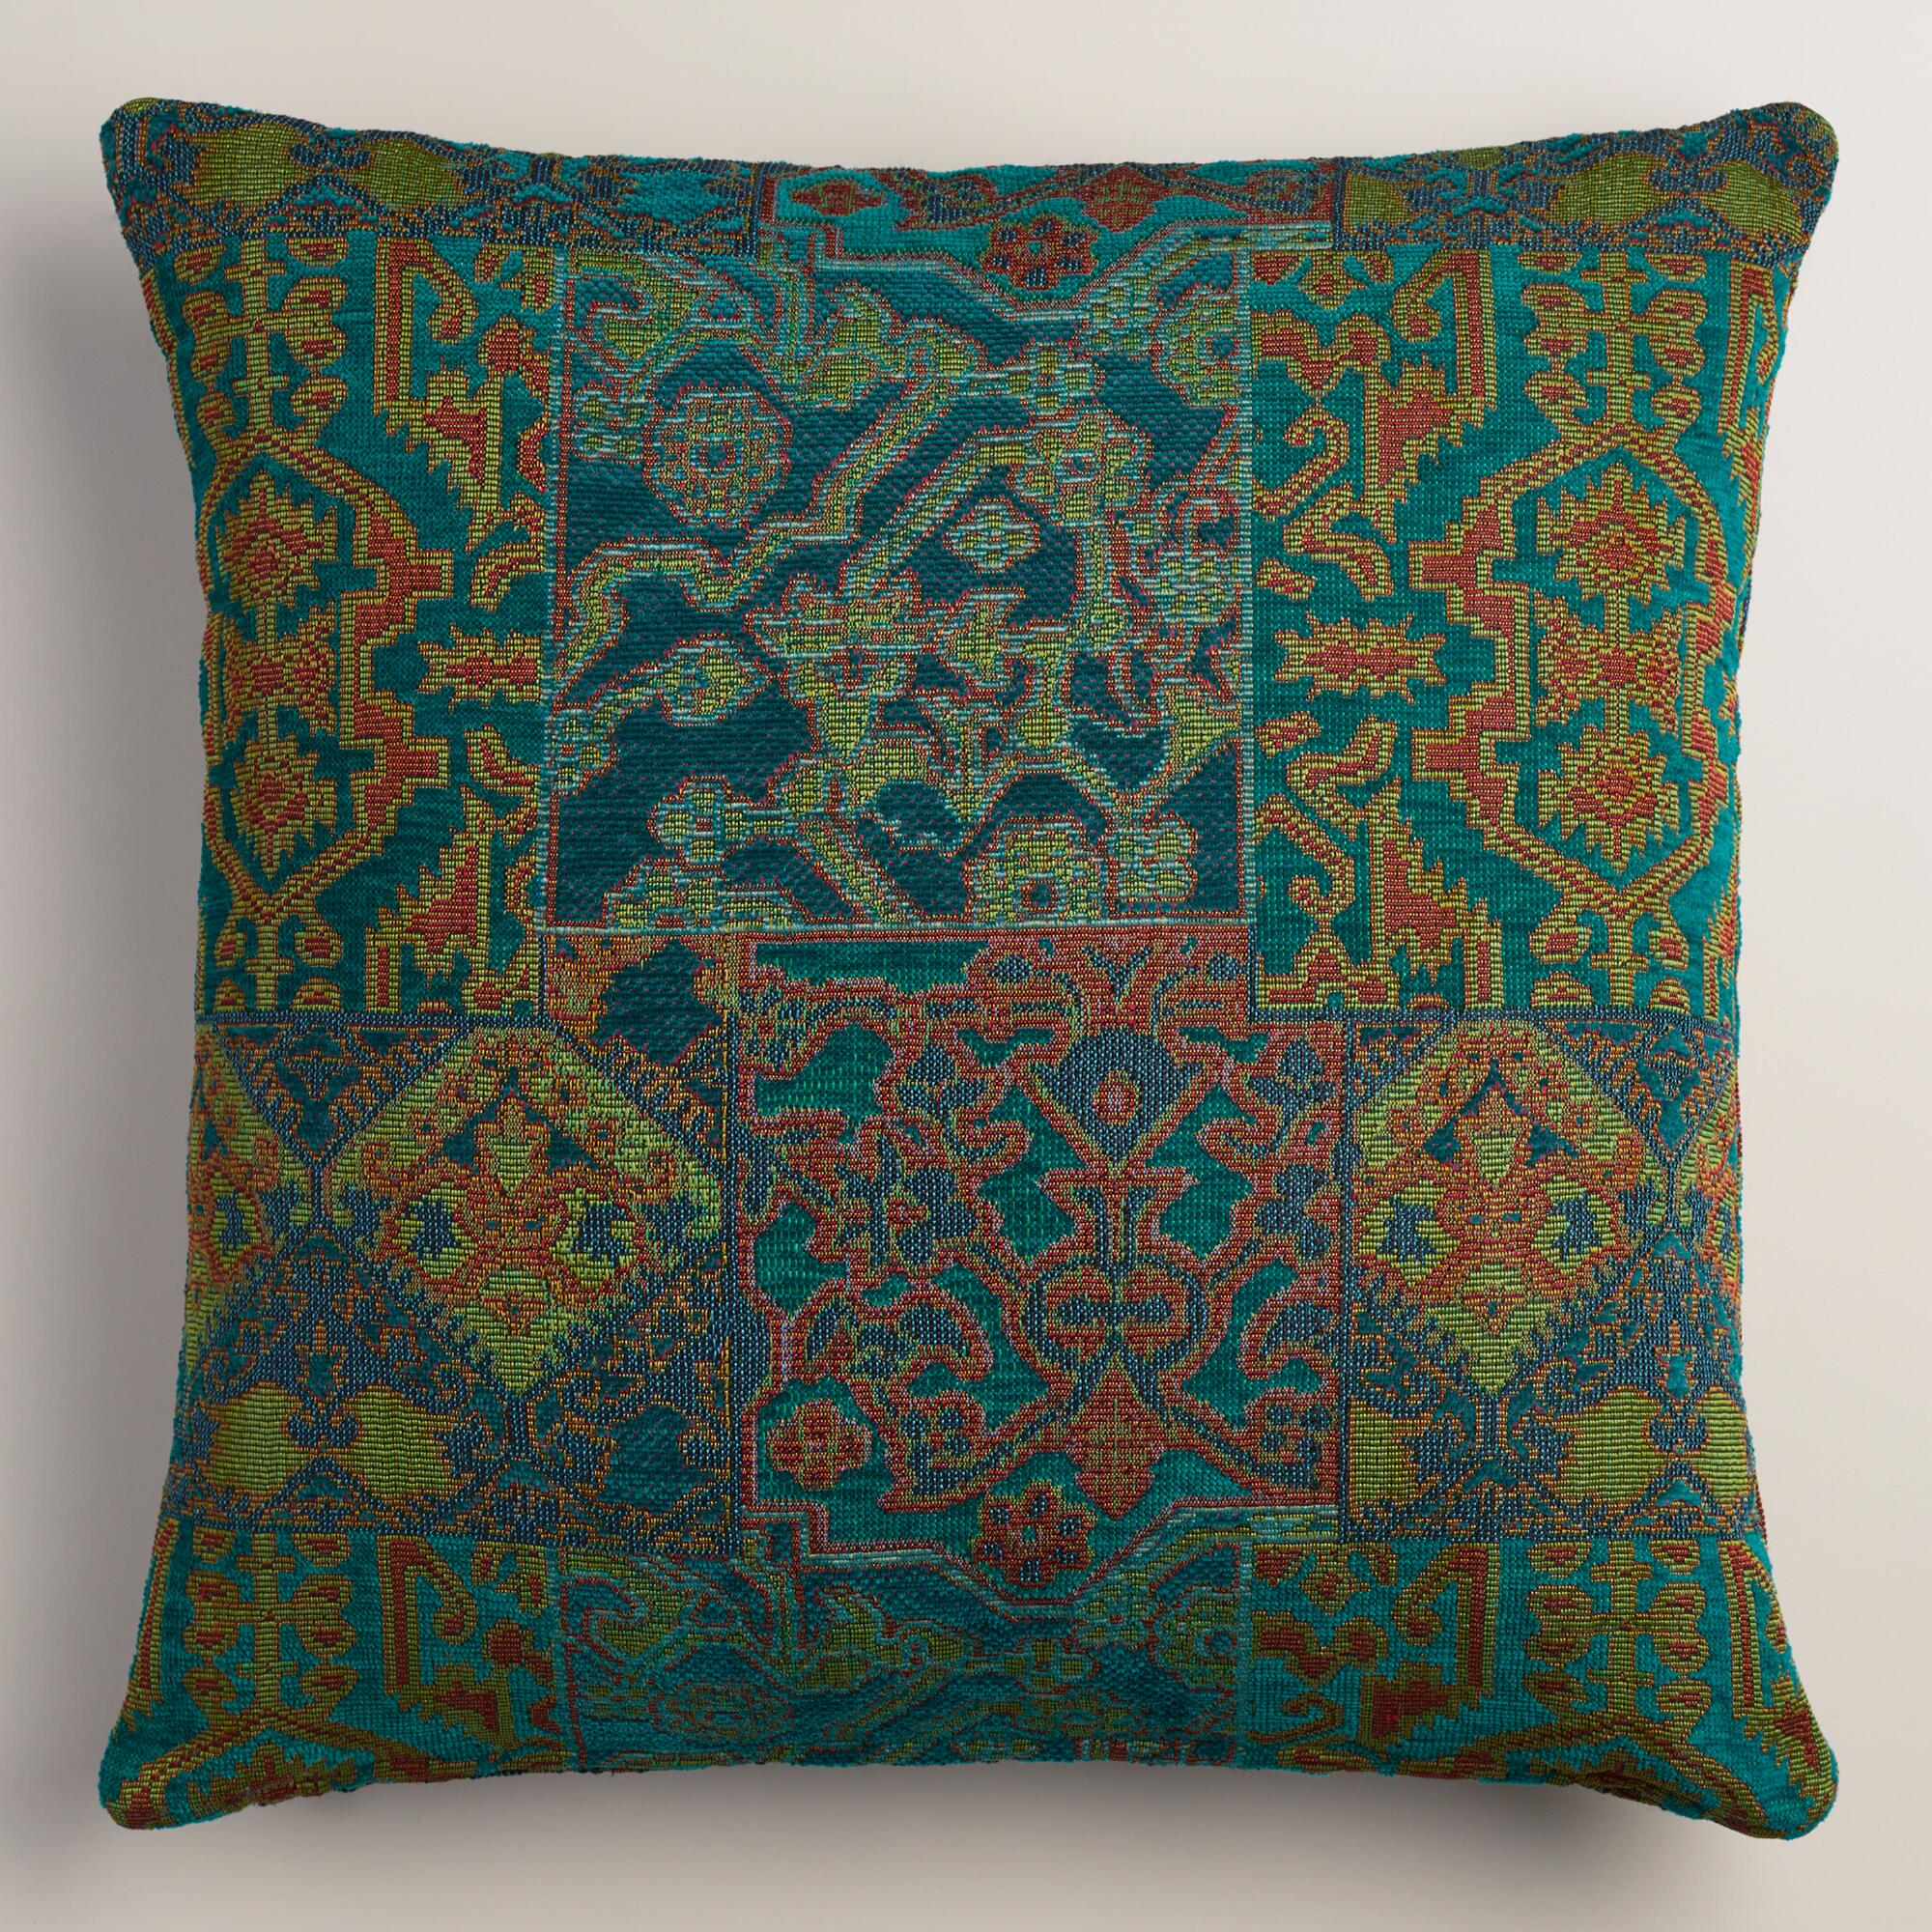 Blue and Green Marrakesh Jacquard Throw Pillow World Market